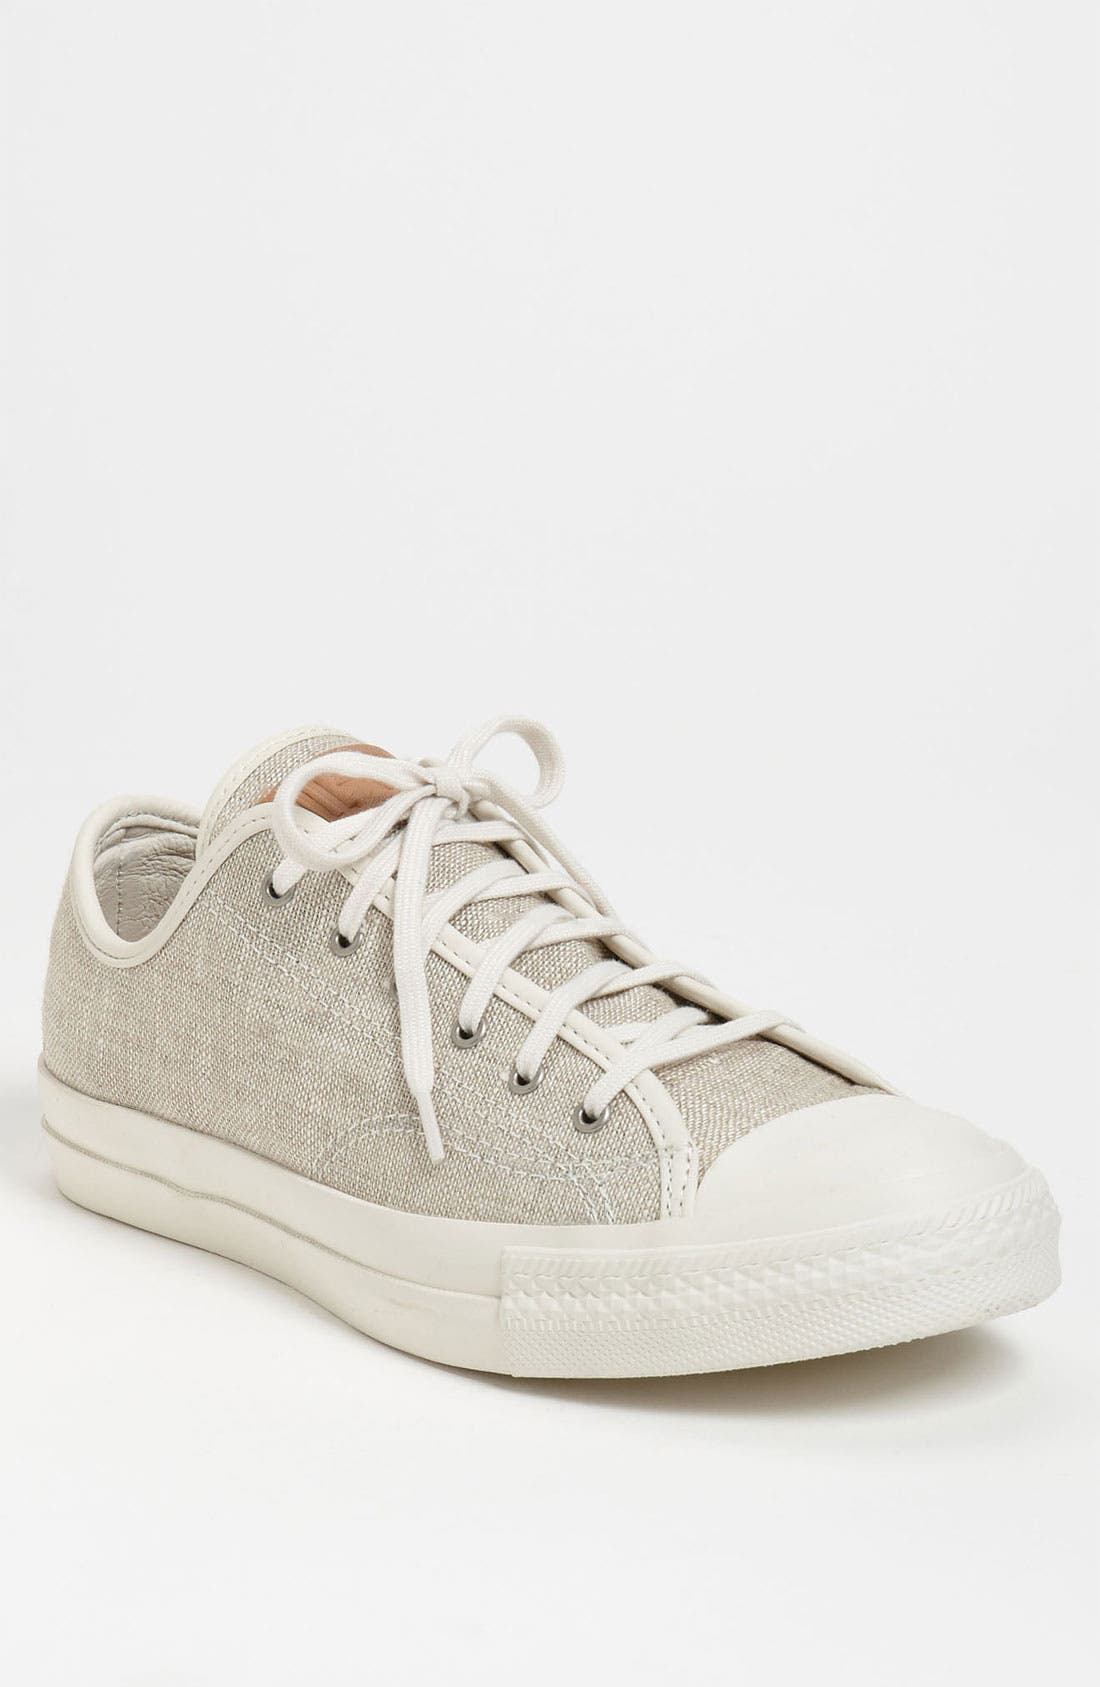 Alternate Image 1 Selected - Converse Chuck Taylor® 'Premium' Low Sneaker (Men) (Online Only)